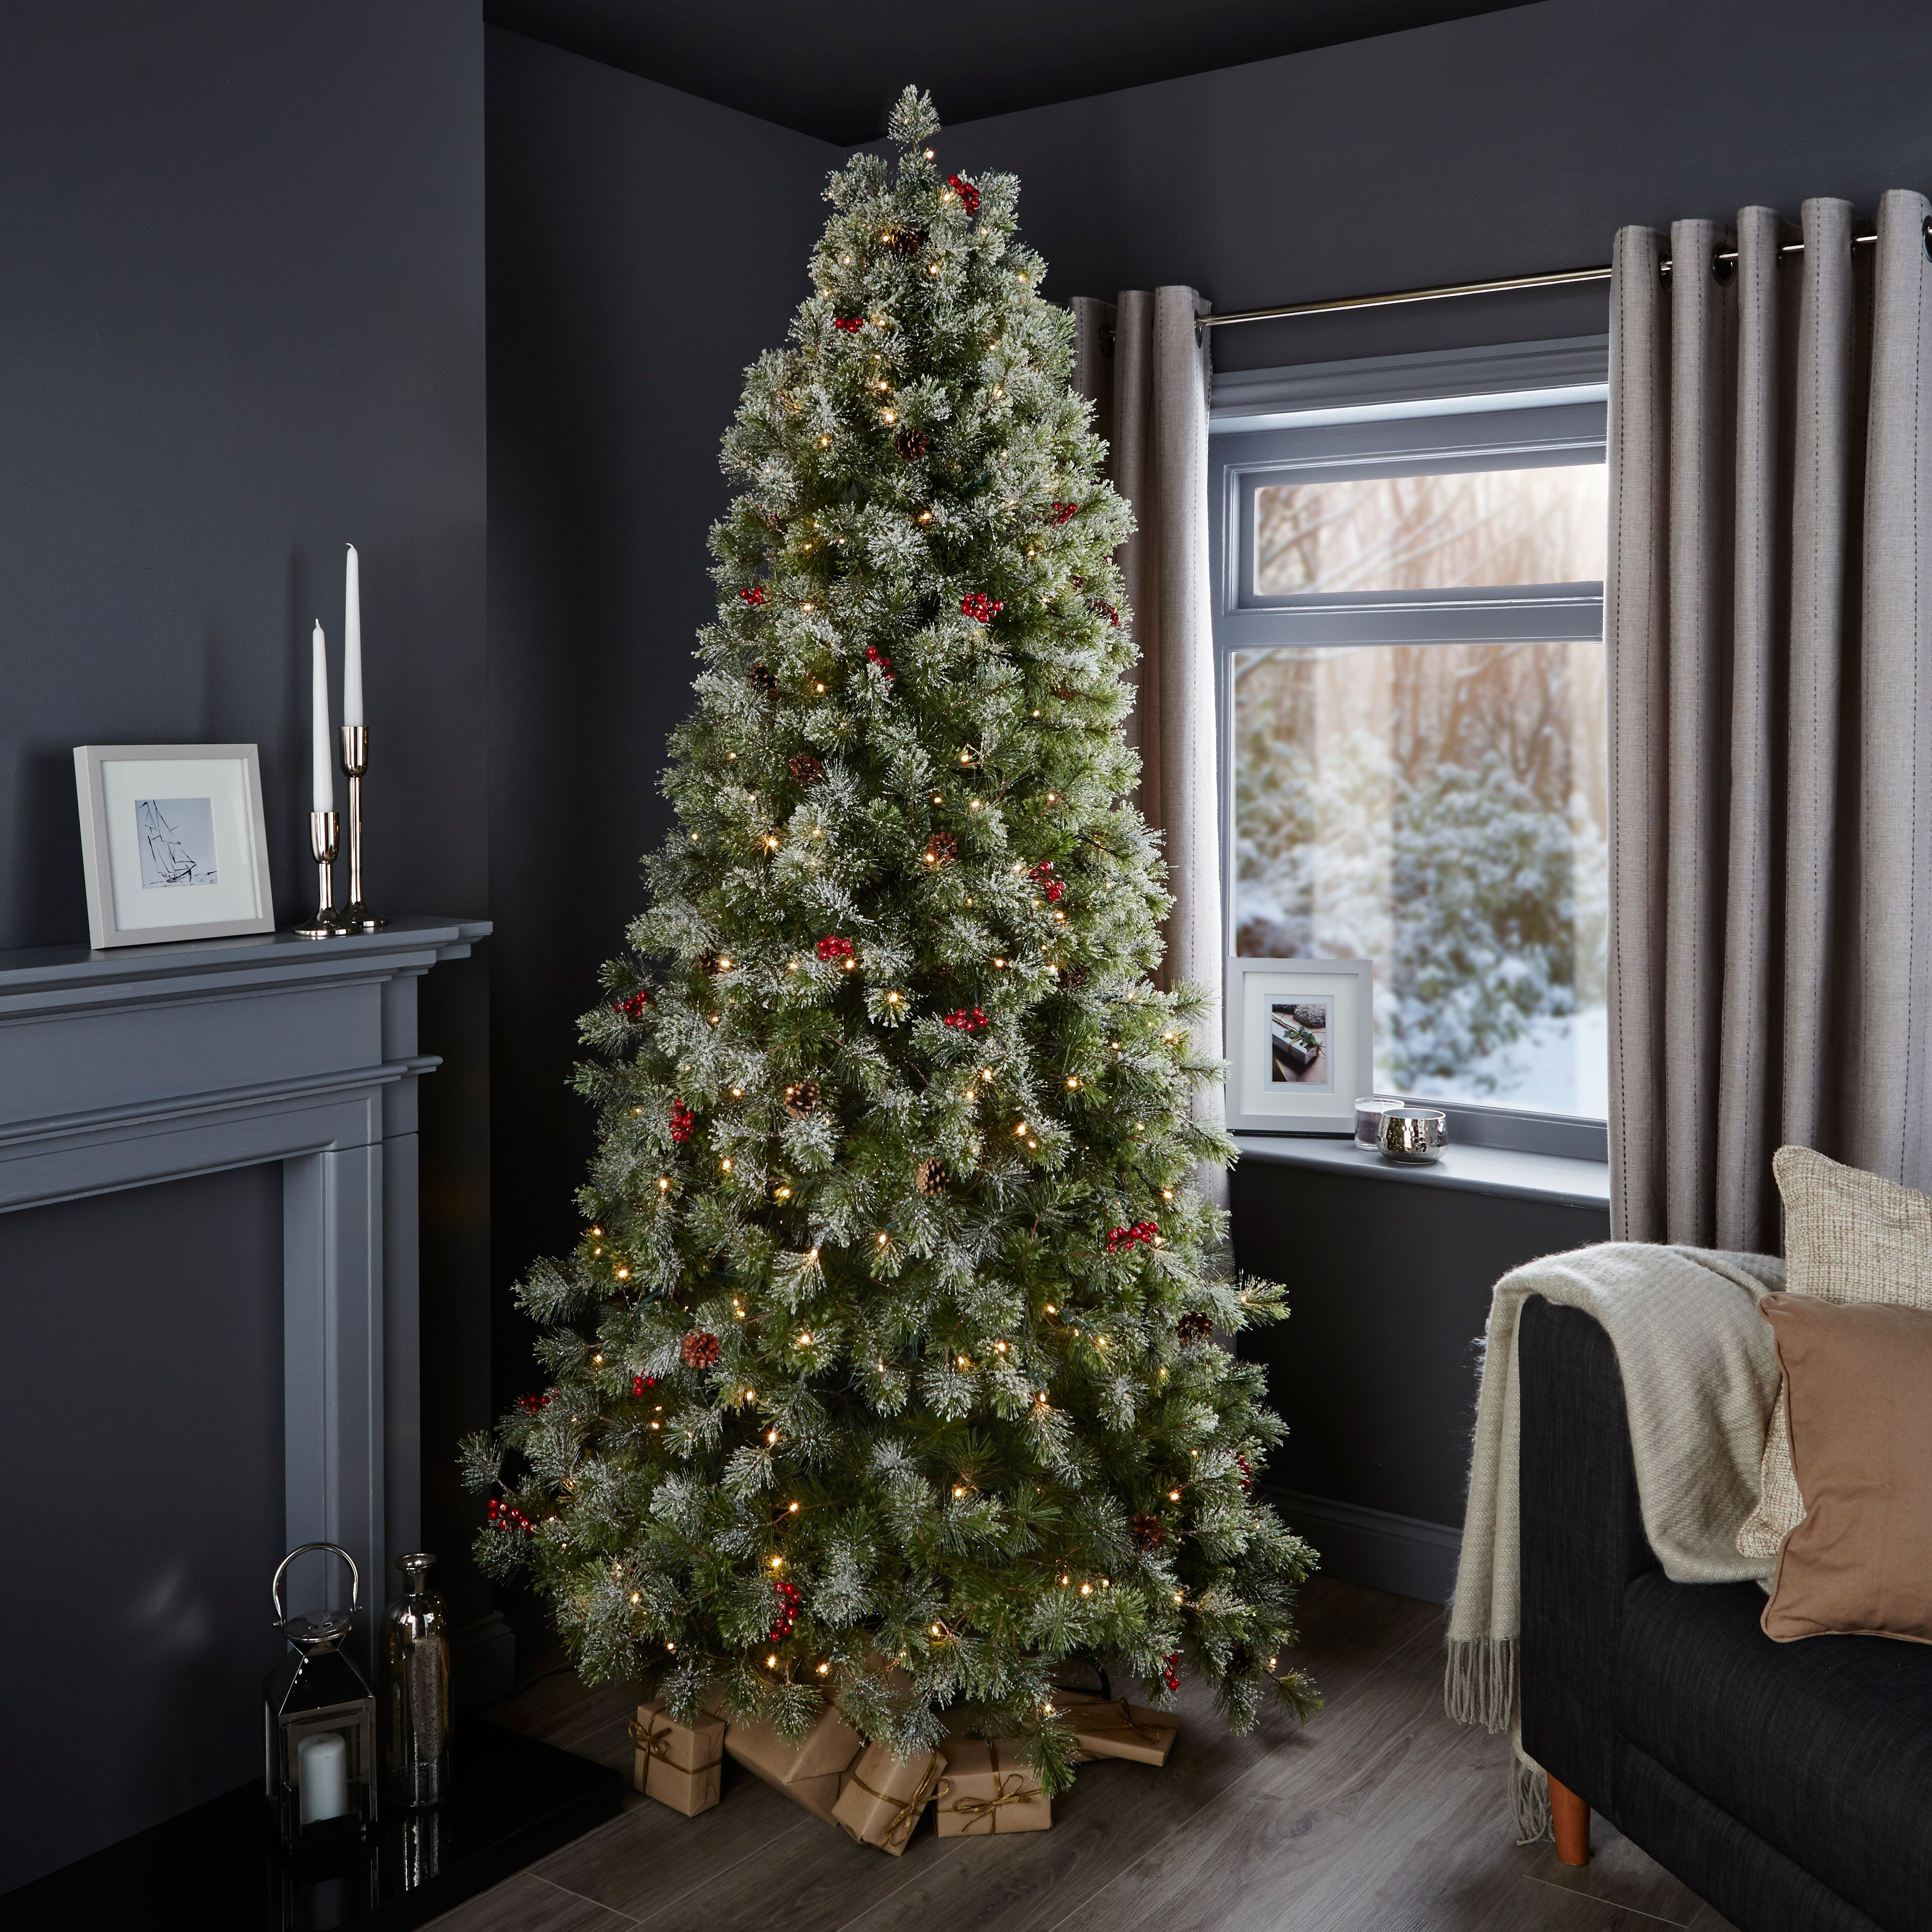 Xmas Tree: 7ft 6In Fairview Pre-Lit & Pre Decorated Christmas Tree